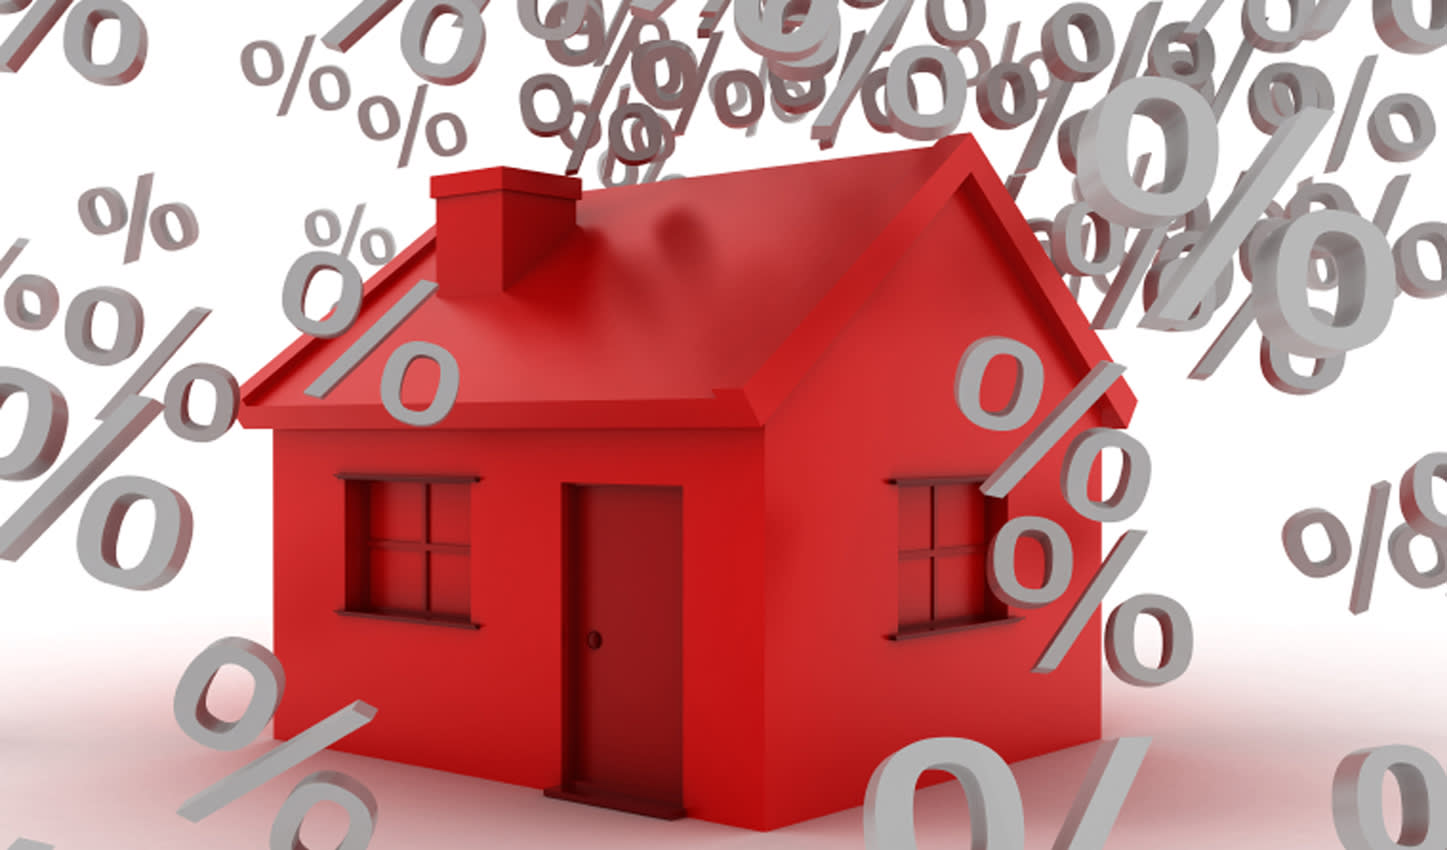 Third of borrowers unaware of mortgage rate